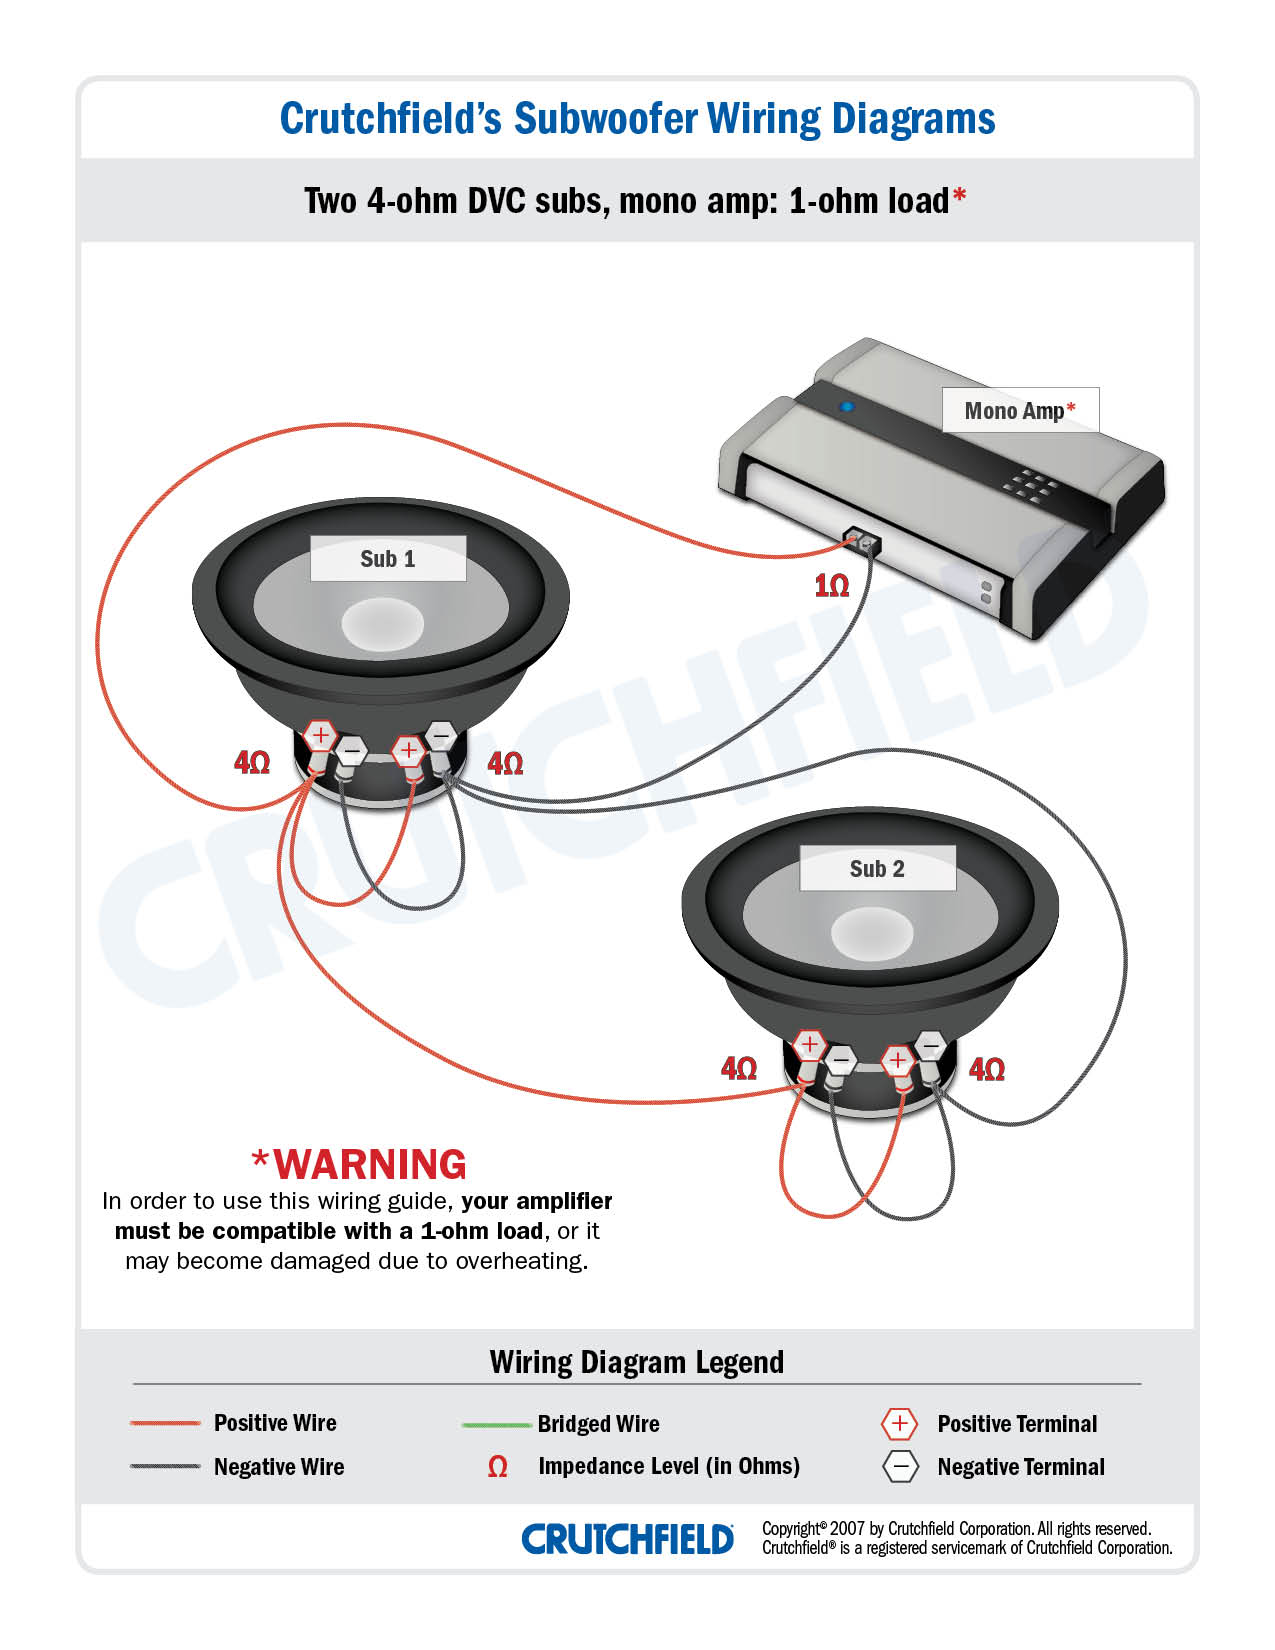 subwoofer wiring diagrams how to wire your subs house speakers wire diagram in your case, the 4 ohm wiring scheme is the only safe way to connect that gear together